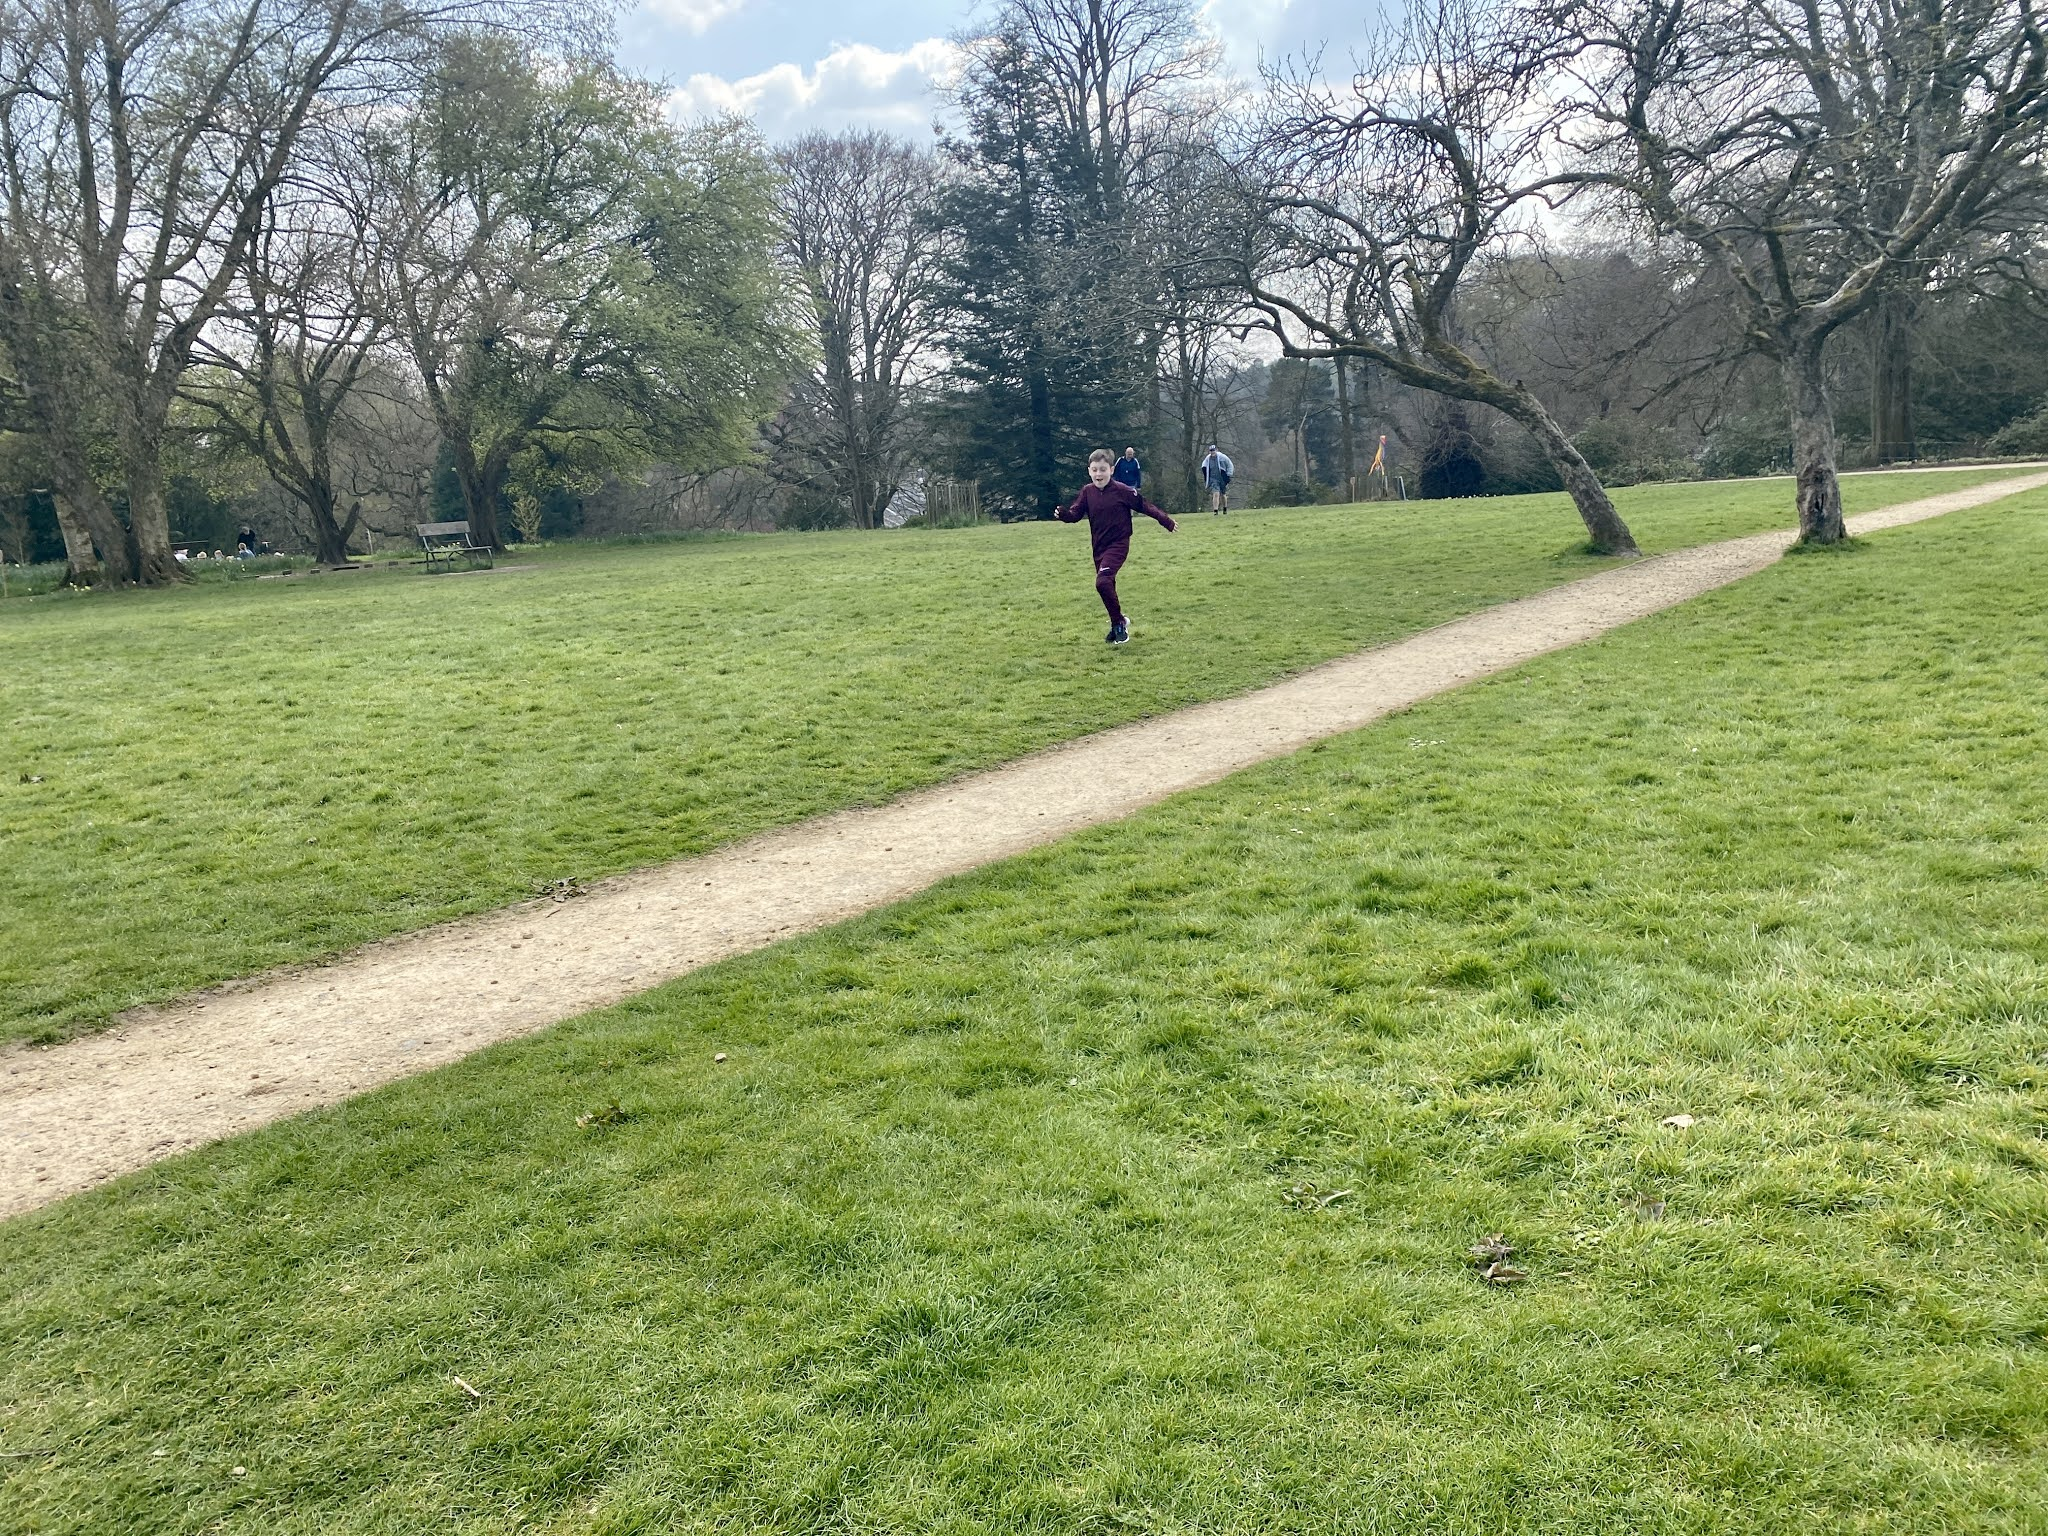 boy running on grass